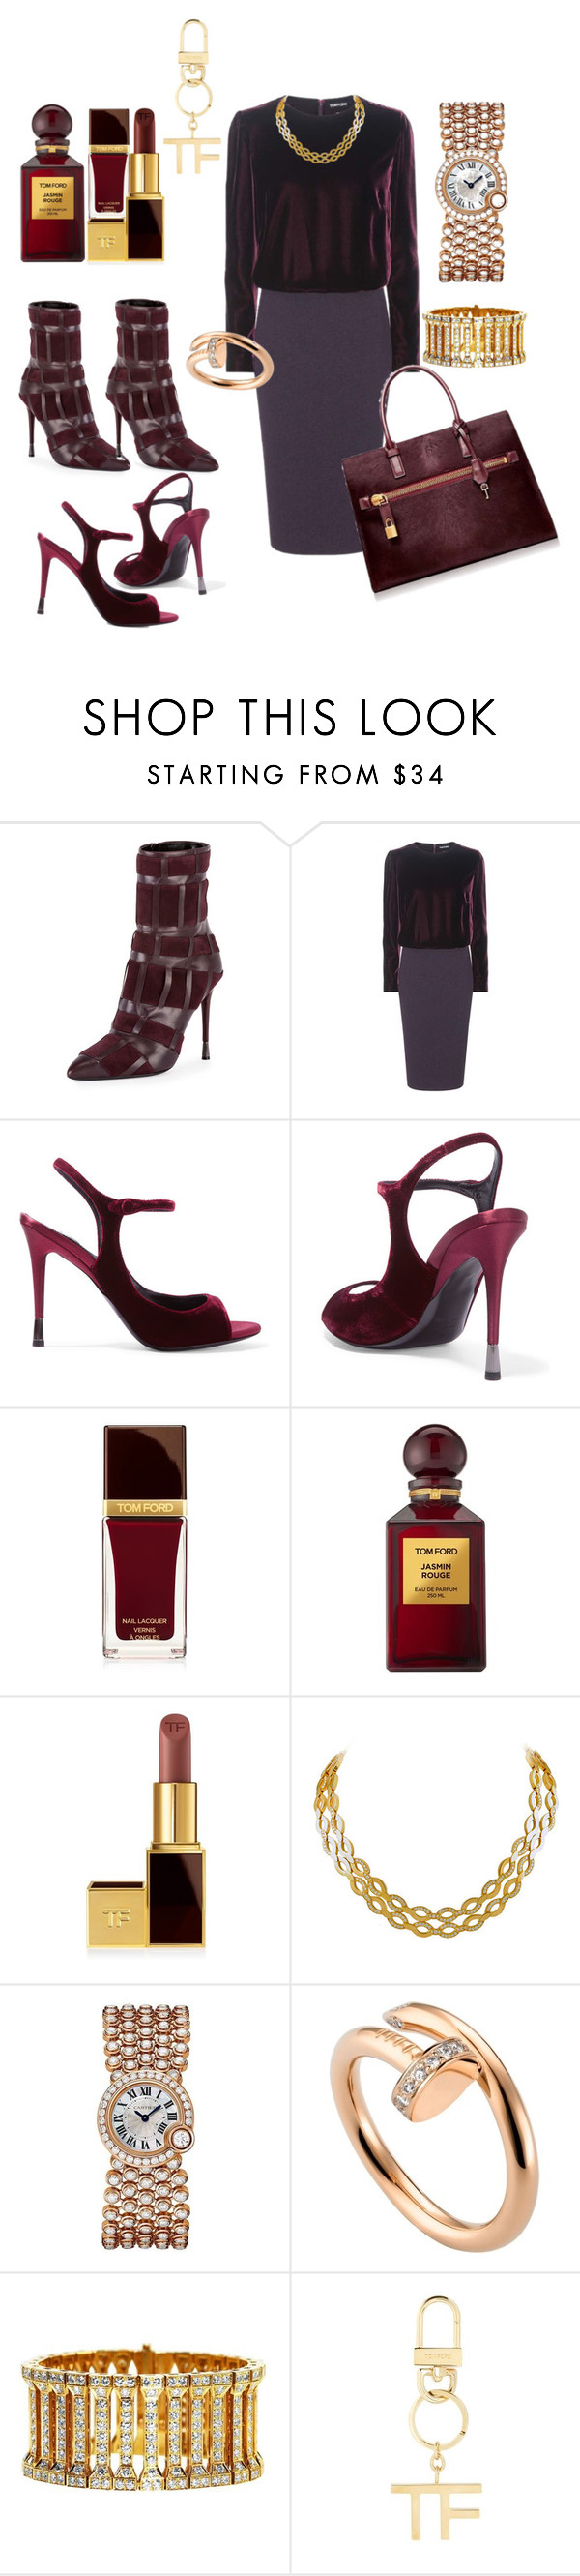 """Tom ford"" by ellenfischerbeauty ❤ liked on Polyvore featuring Tom Ford, Cartier, cartier, gucci, TOMFORD and Jasmin"